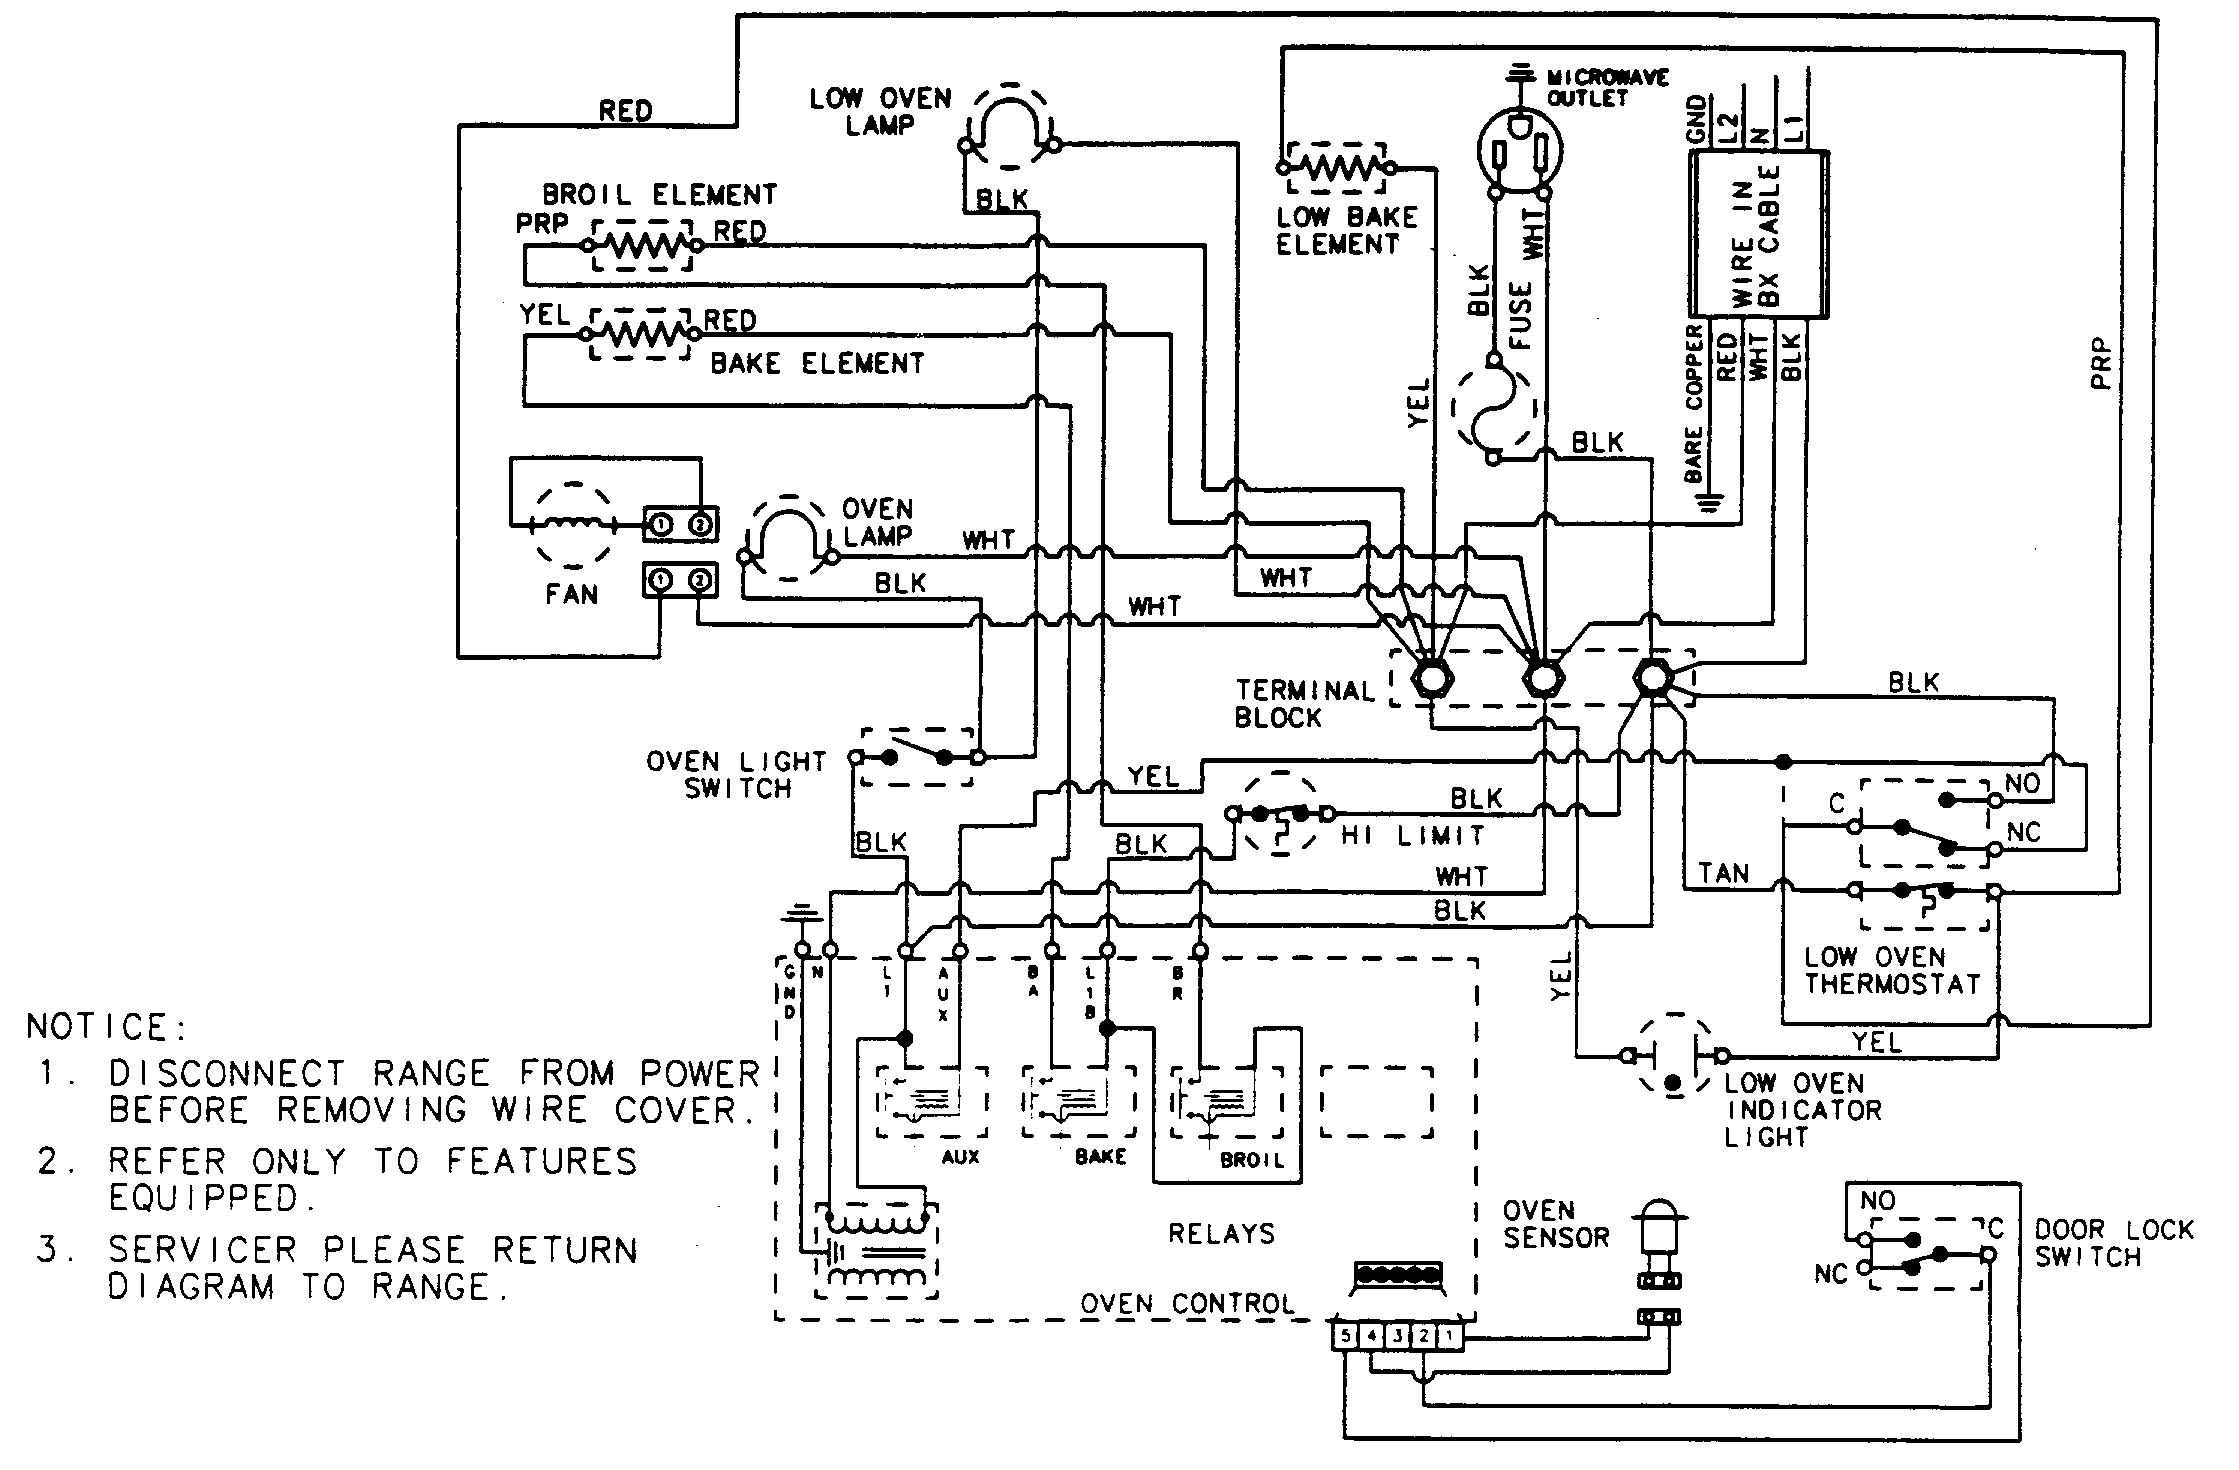 magic chef 9825vuv electric oven timer stove clocks and 9825vuv electric oven wiring information parts diagram